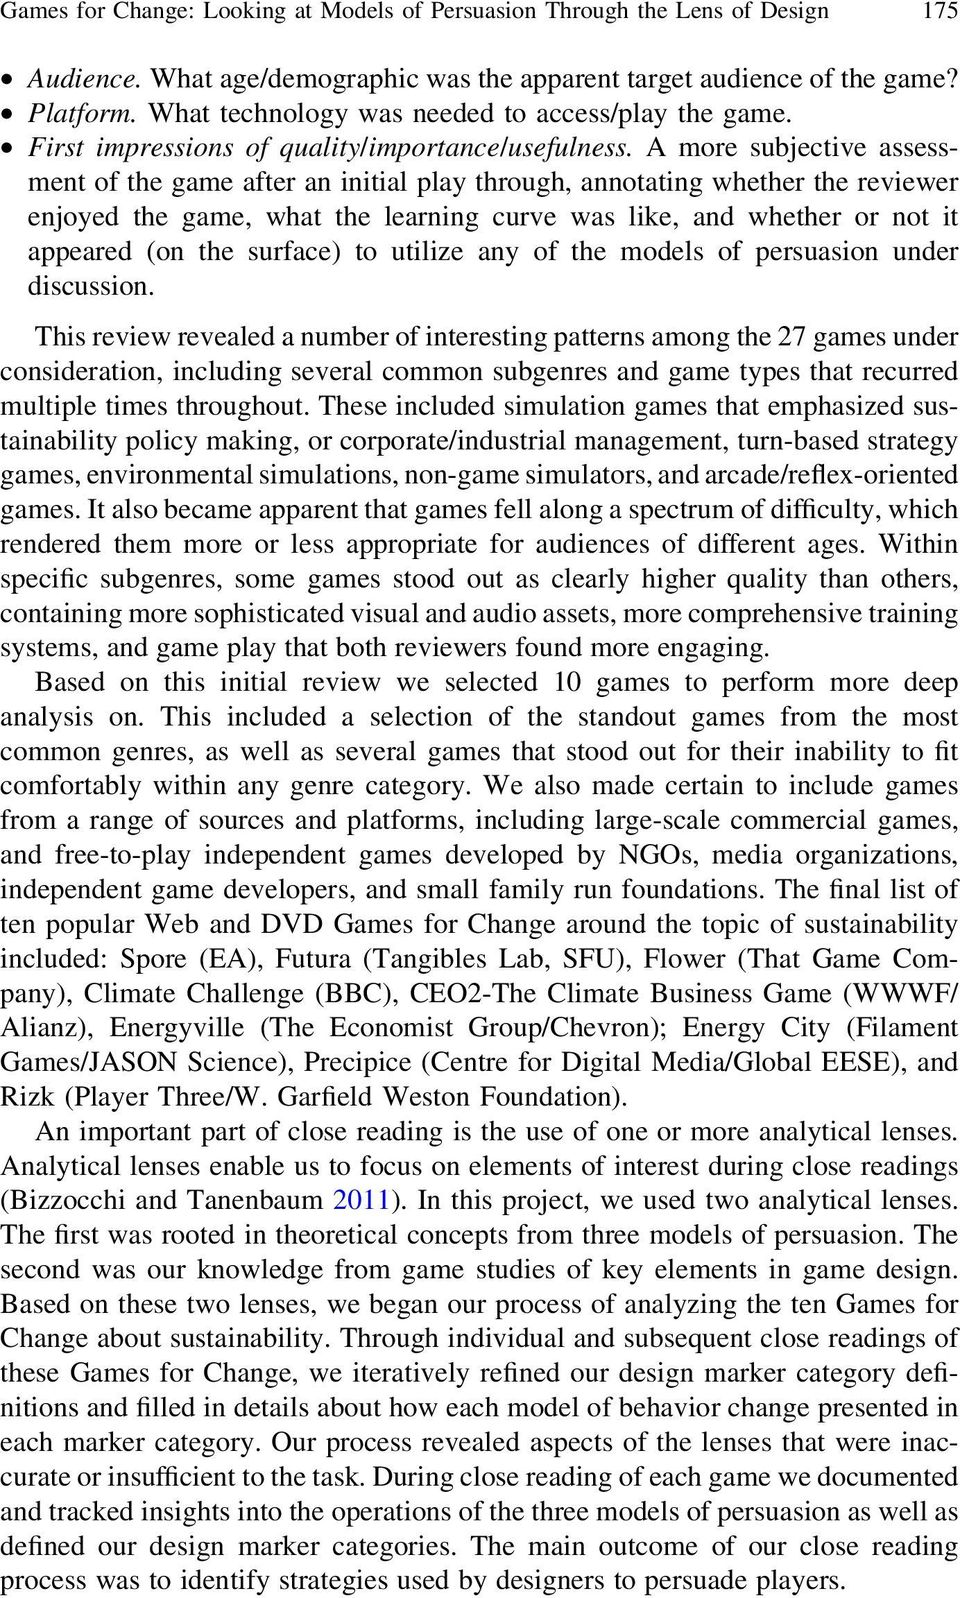 A more subjective assessment of the game after an initial play through, annotating whether the reviewer enjoyed the game, what the learning curve was like, and whether or not it appeared (on the